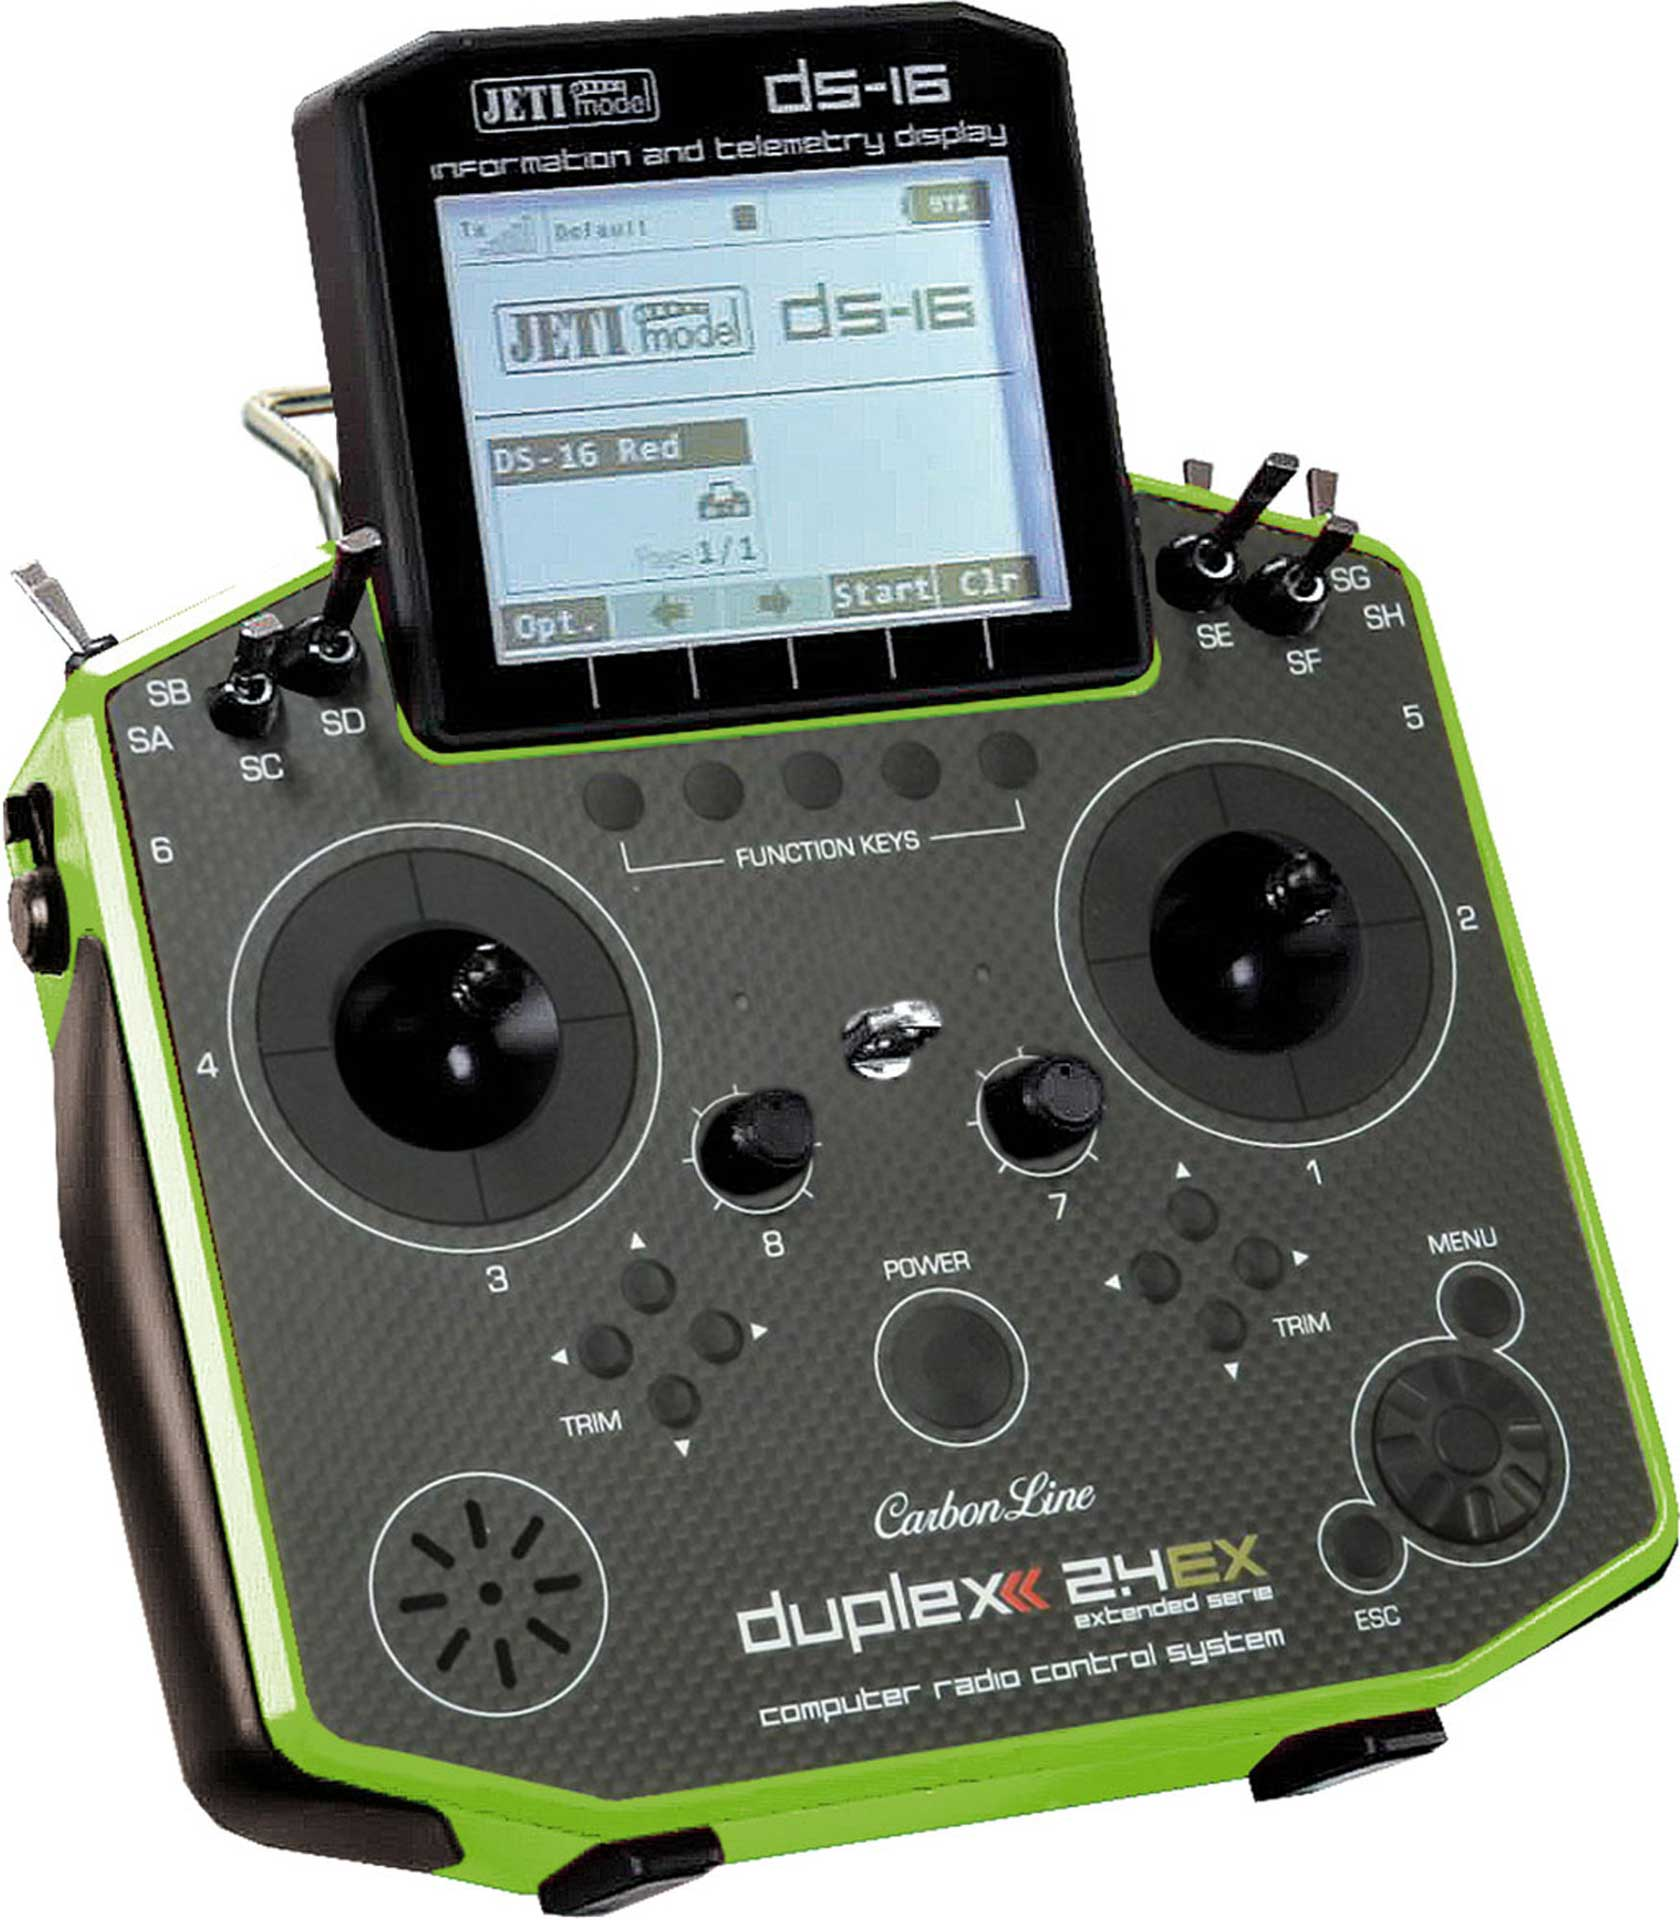 JETI DS-16 2.4EX DUPLEX CARBON MULTIMODE  GREEN WITH R9 2.4EX RECEIVER TRANSMITTER